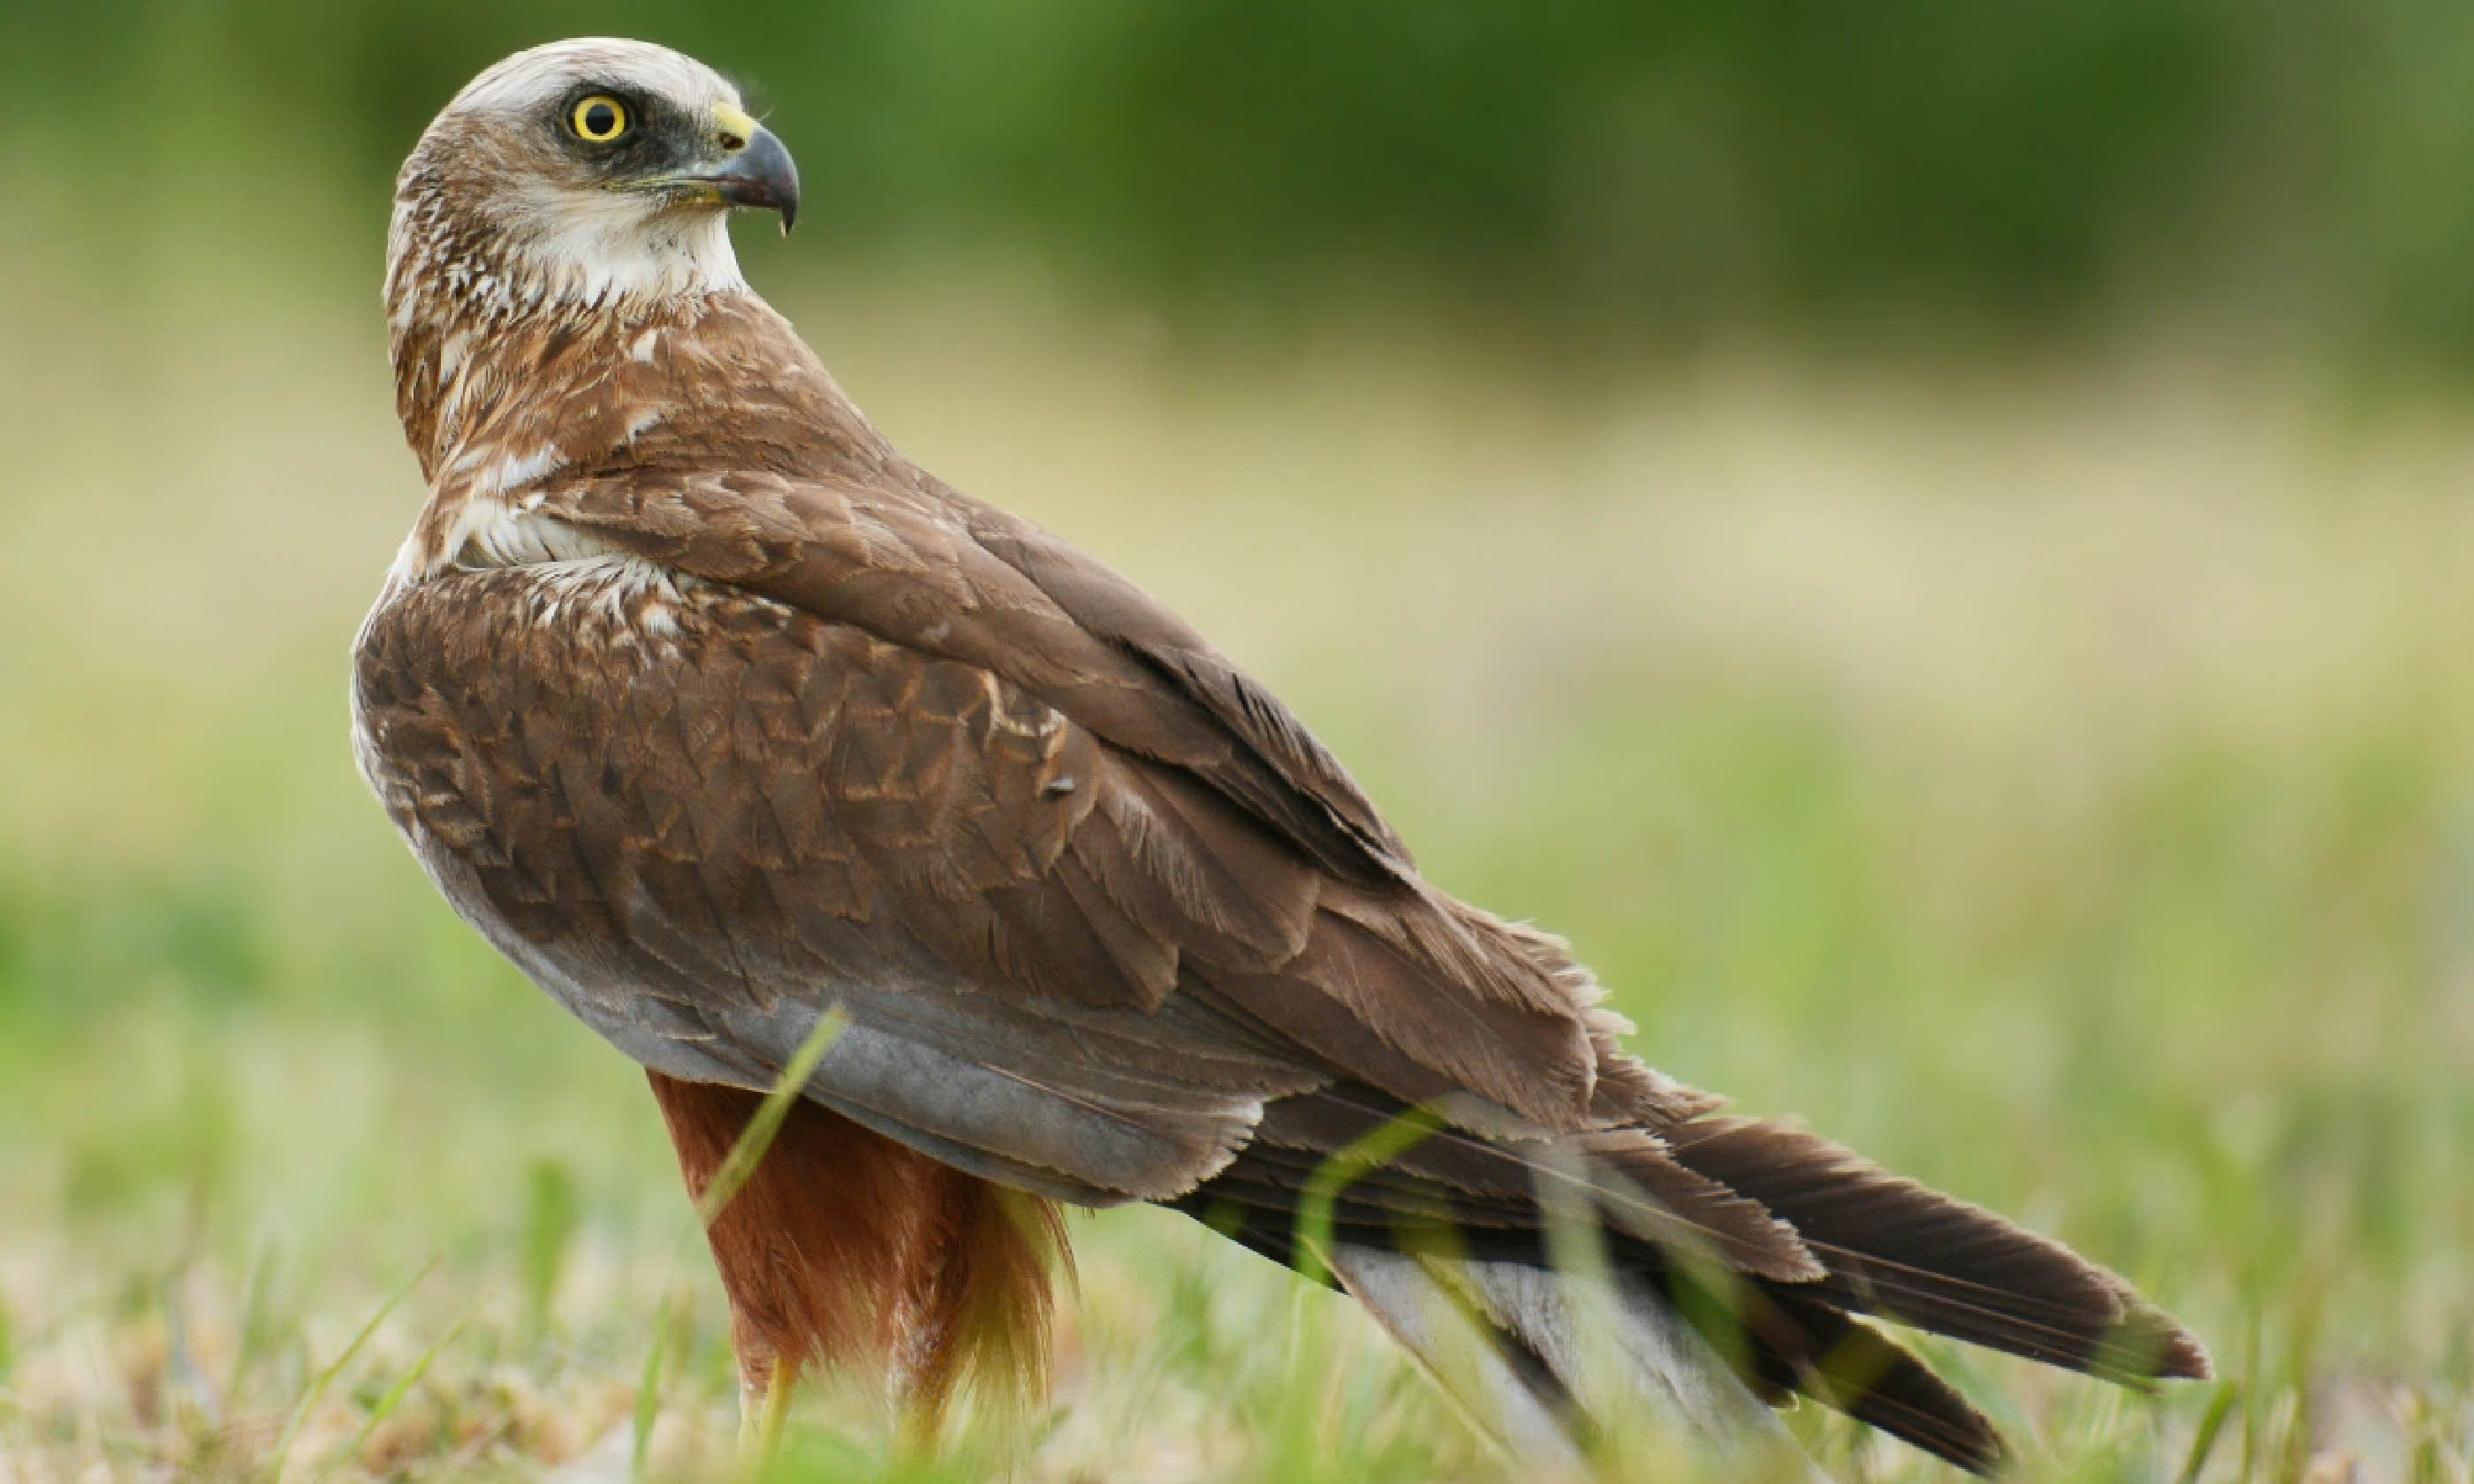 A marsh harrier (Shutterstock)